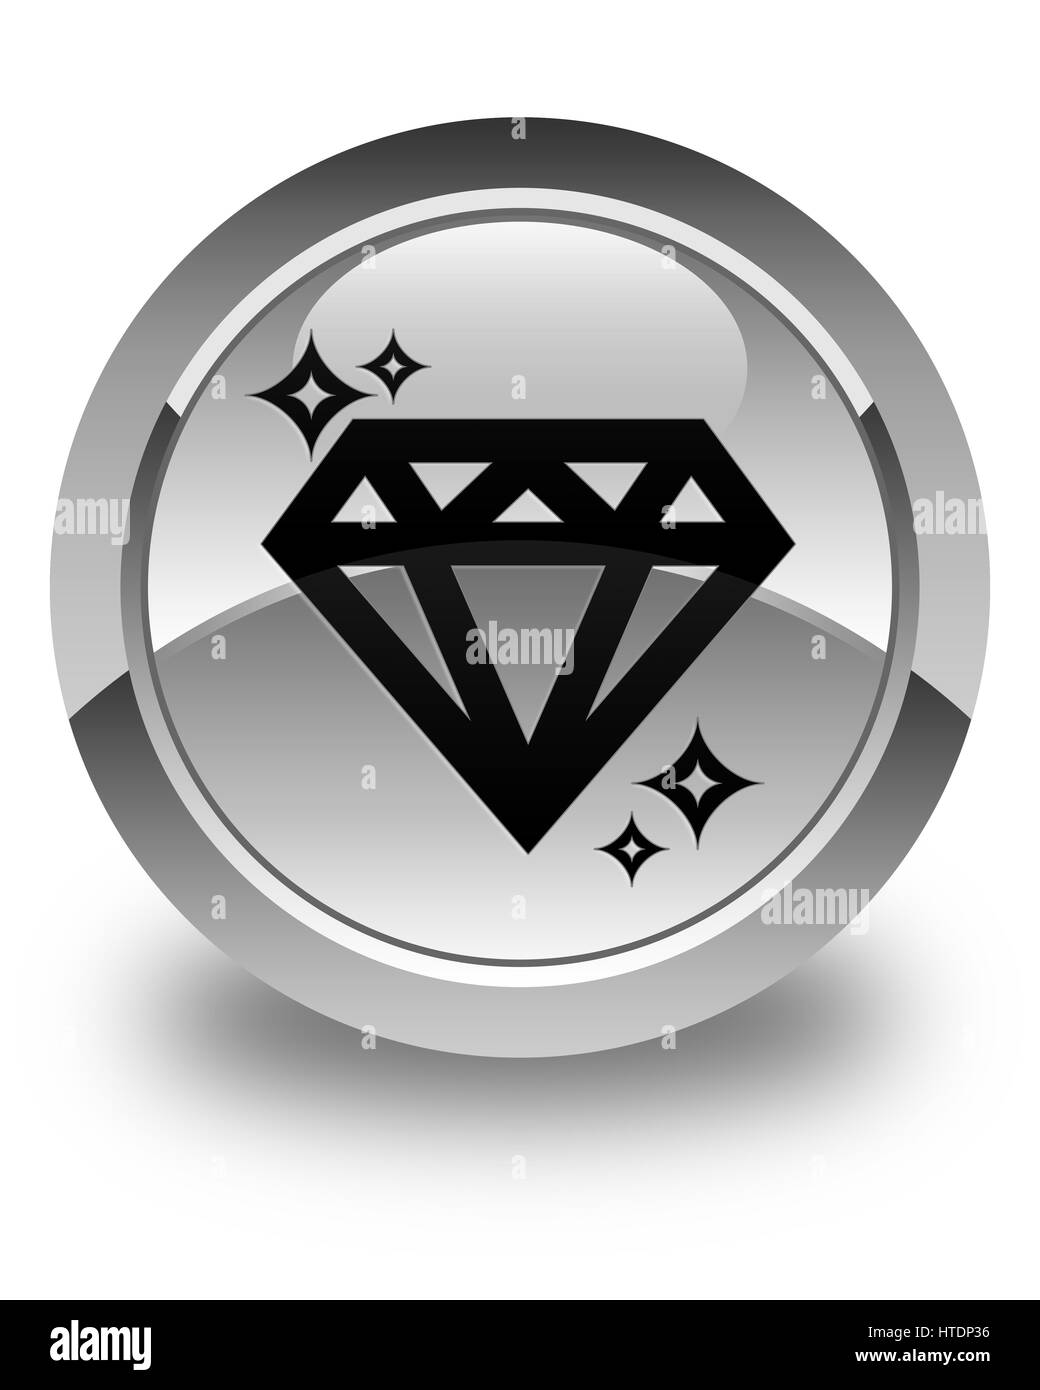 Diamond icon isolated on glossy white round button abstract illustration - Stock Image